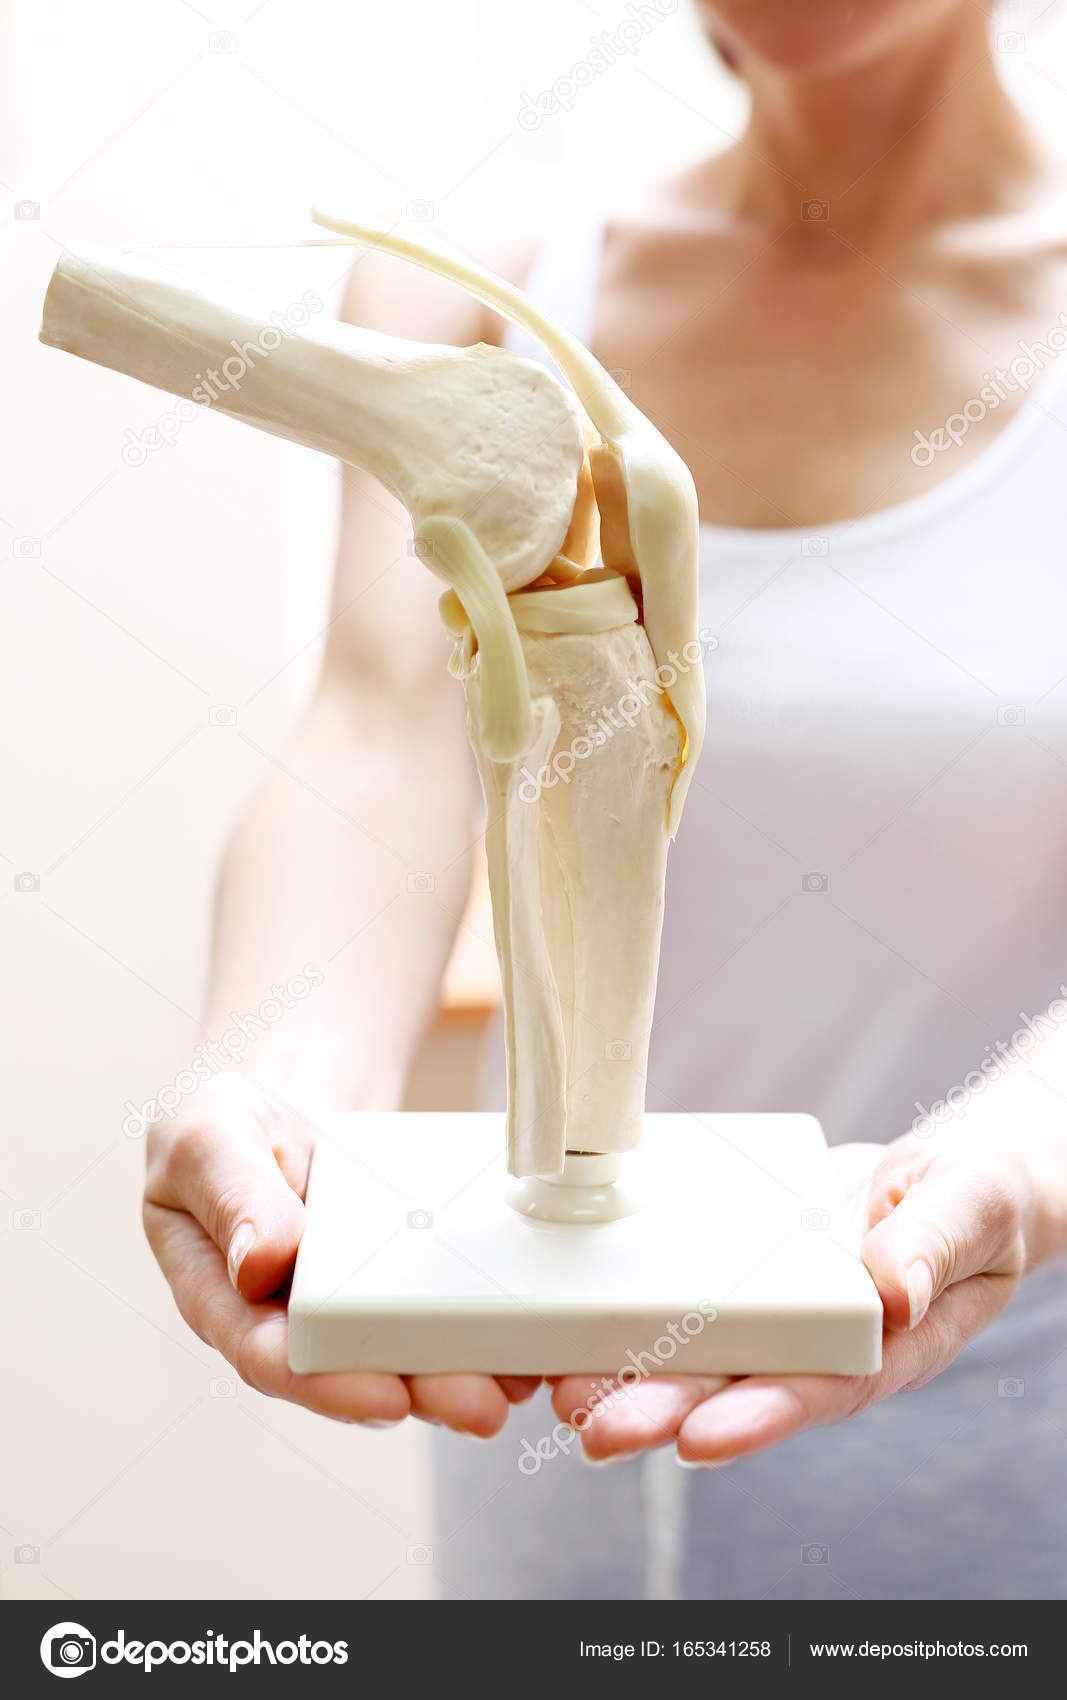 Knee anatomy model stock photo robertprzybysz 165341258 an orthopedic shows an anatomical model of the knee joint photo by robertprzybysz ccuart Image collections